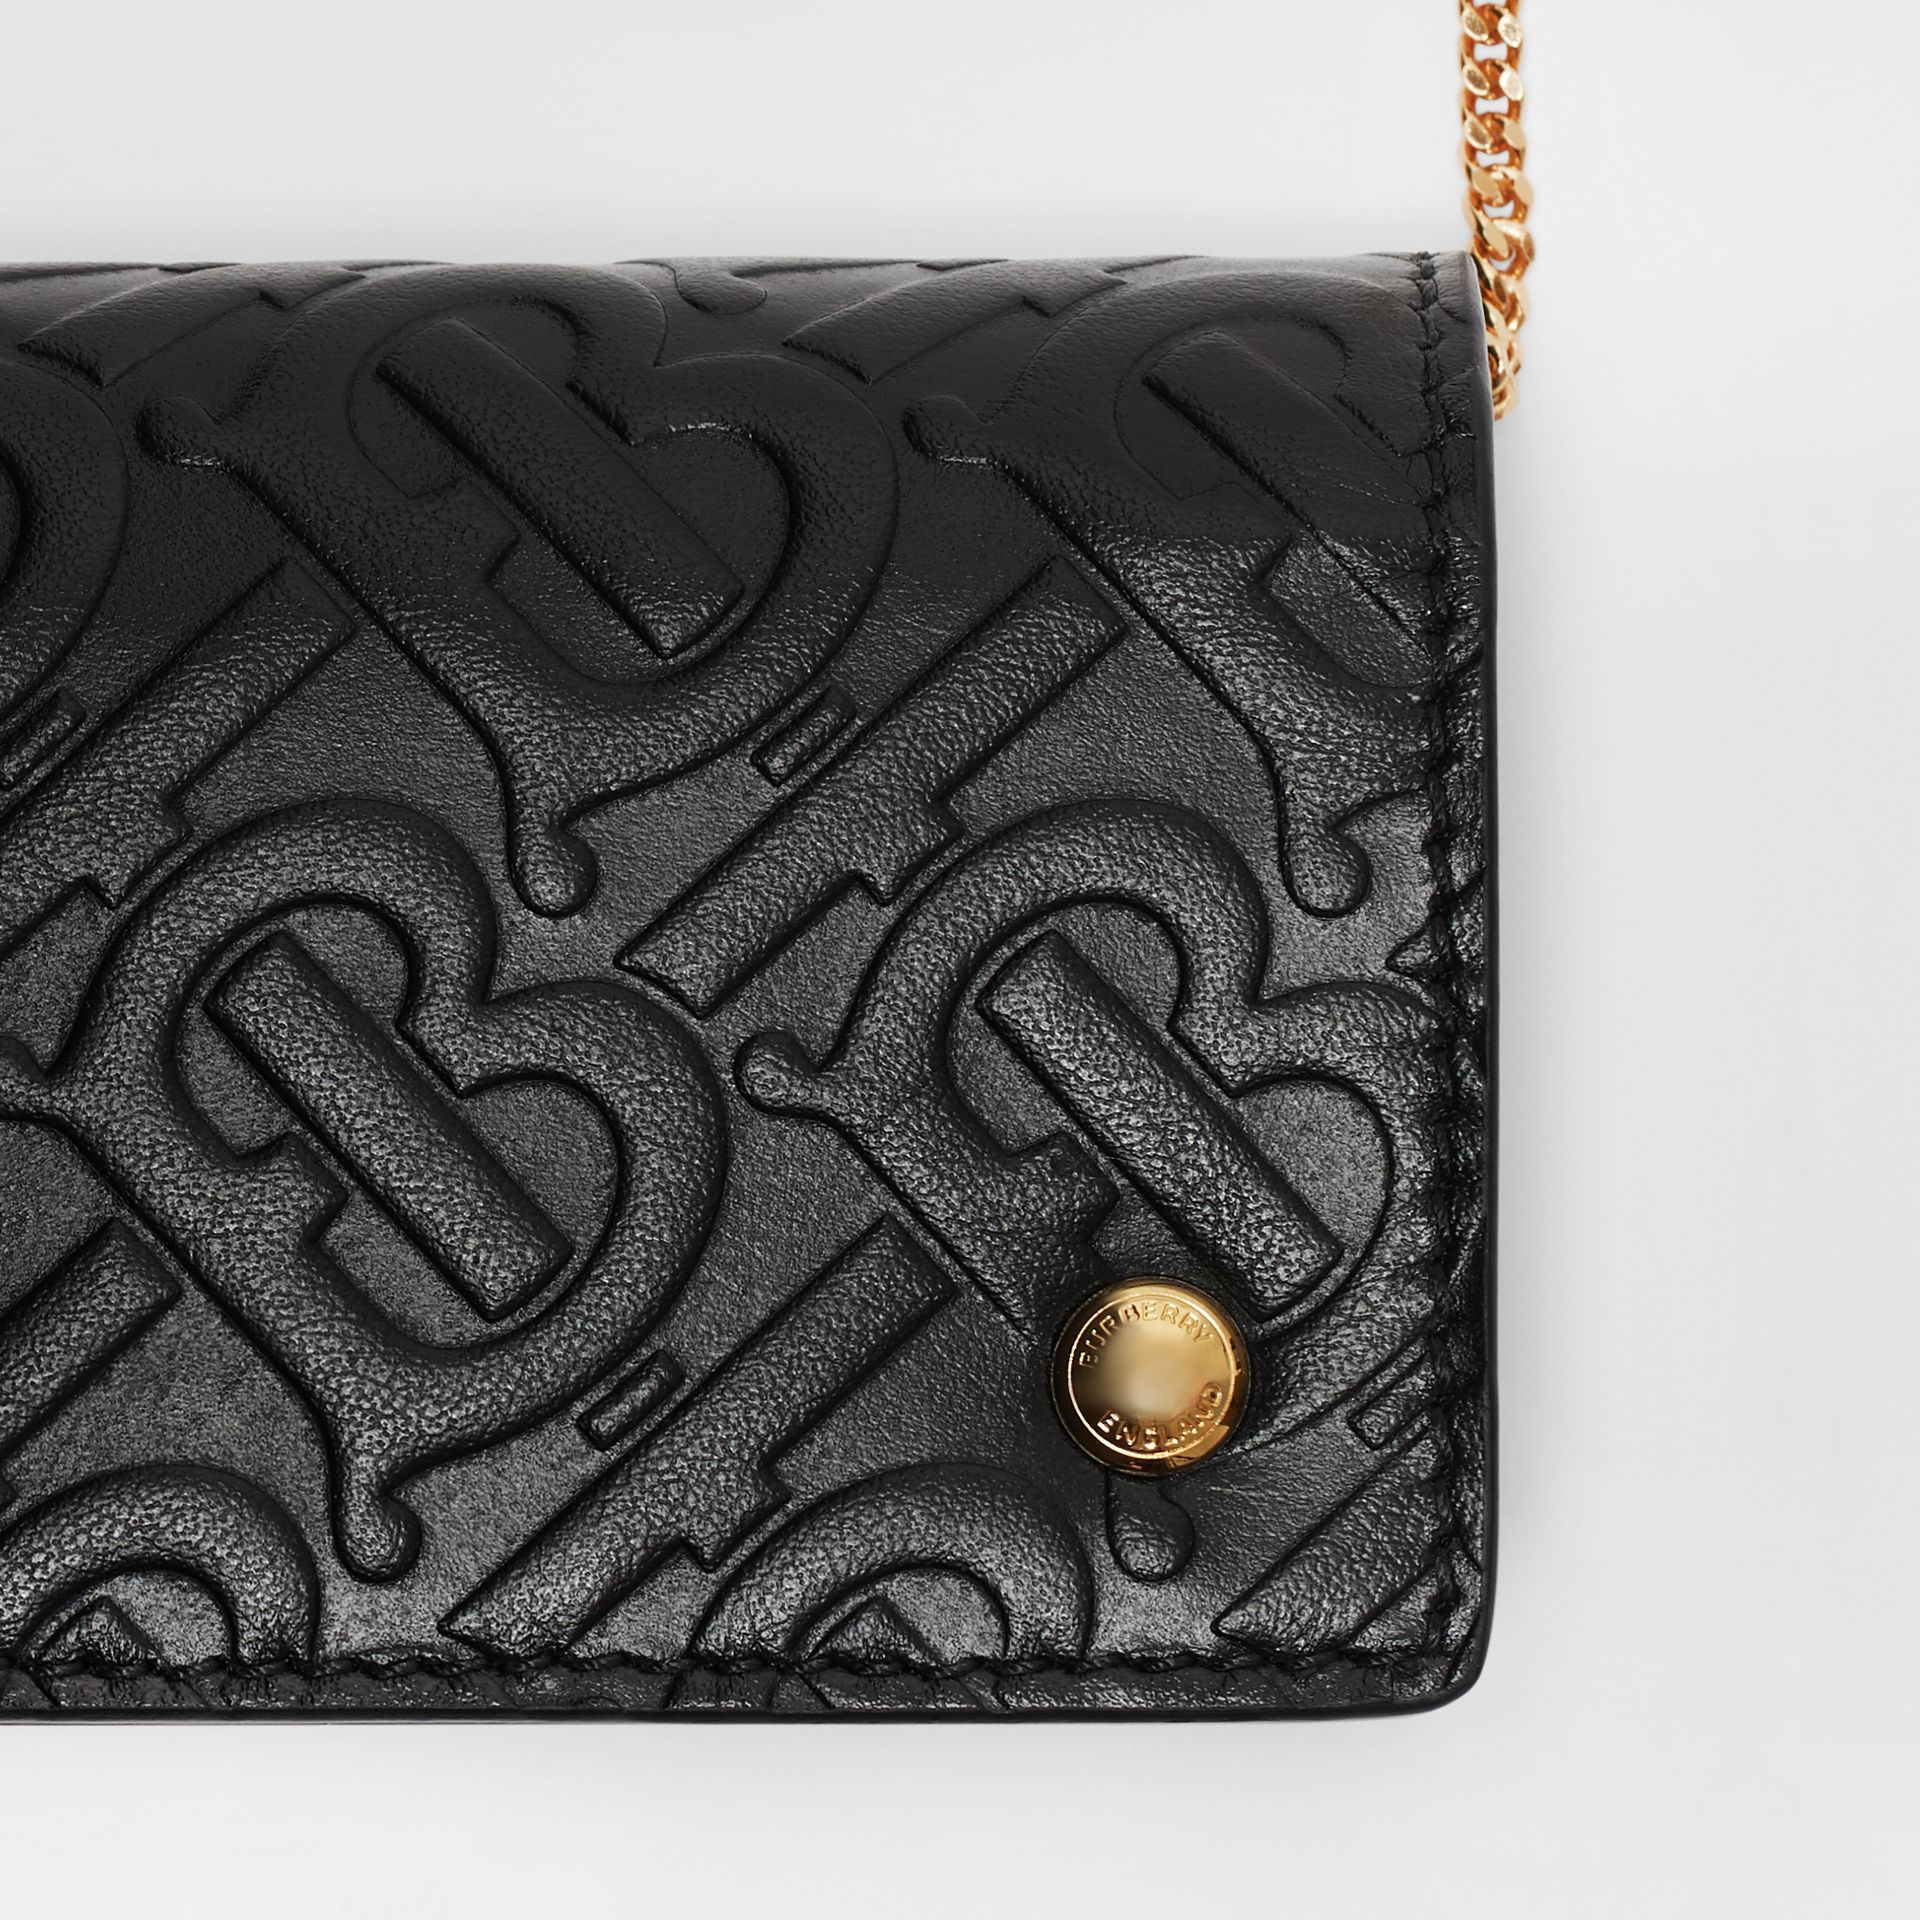 Monogram Leather Card Case with Detachable Strap in Black - Women | Burberry Hong Kong - gallery image 1